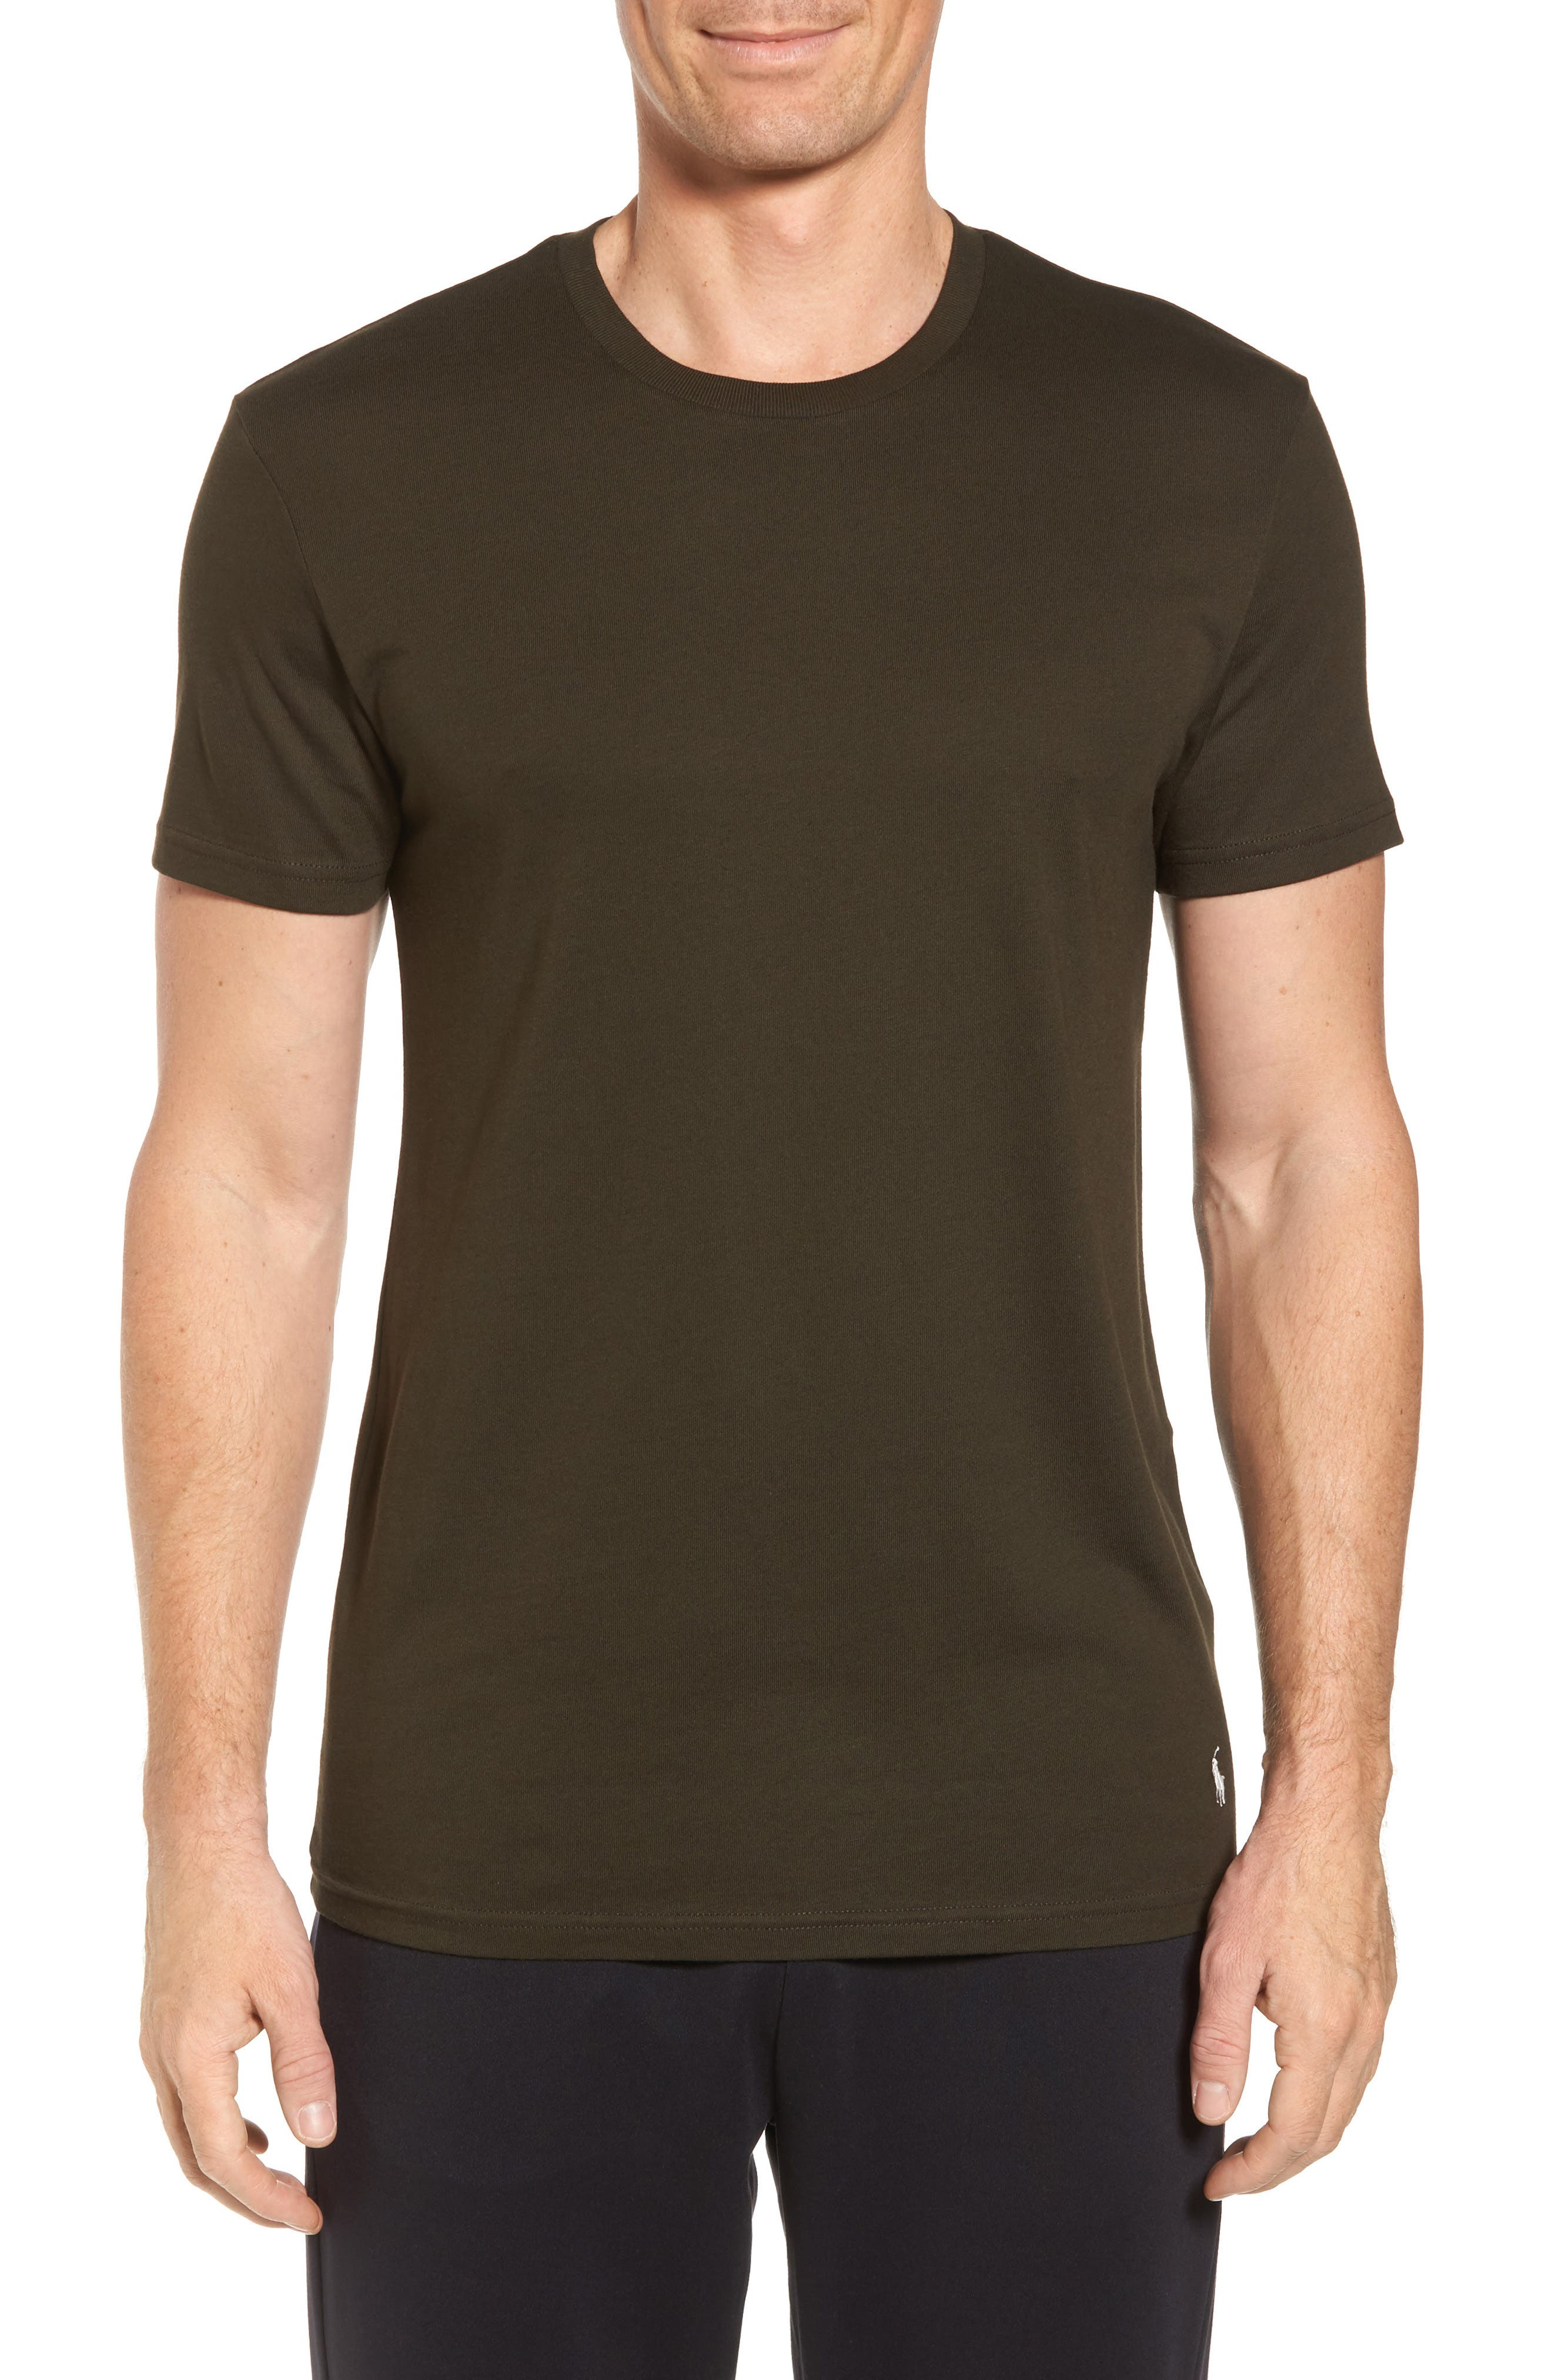 Supreme Comfort Short Sleeve Pajama Top,                         Main,                         color, Rich Olive/ Chic Cream